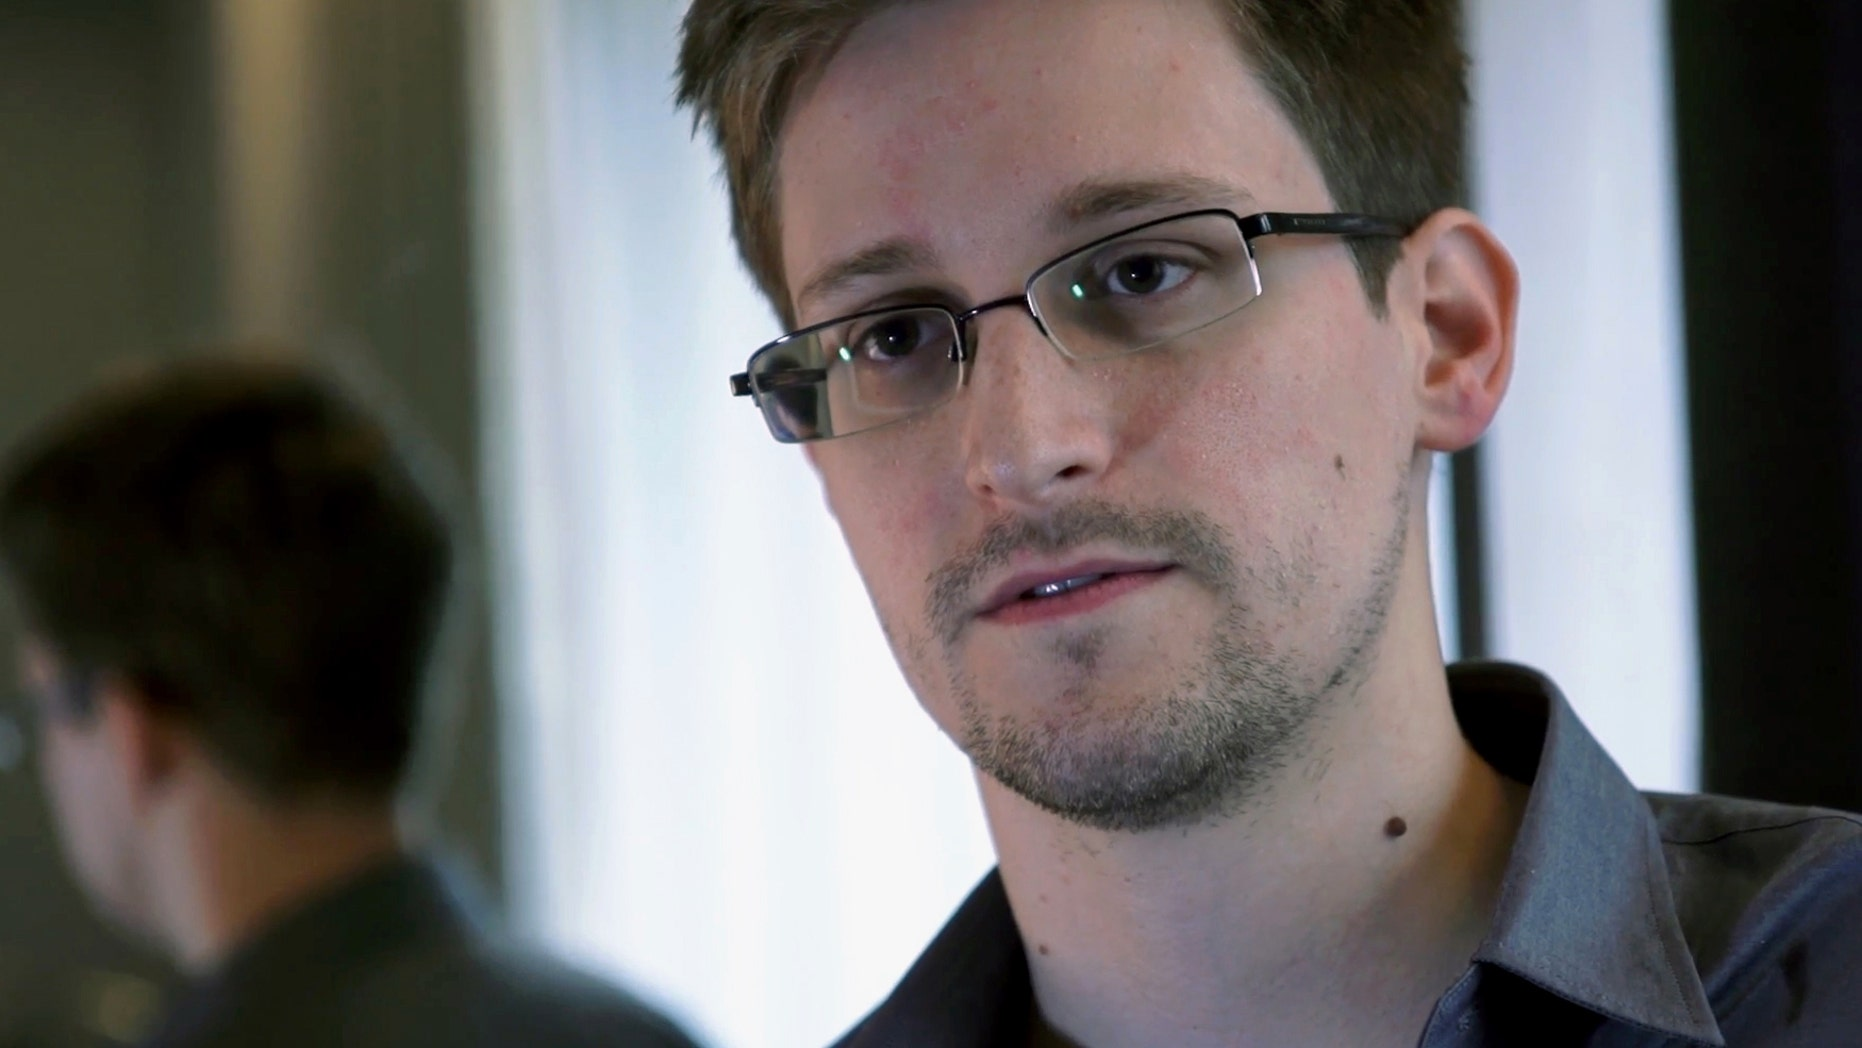 FILE: June 9, 2013: Edward Snowden in Hong Kong, in a photo provided by The Guardian Newspaper in London.